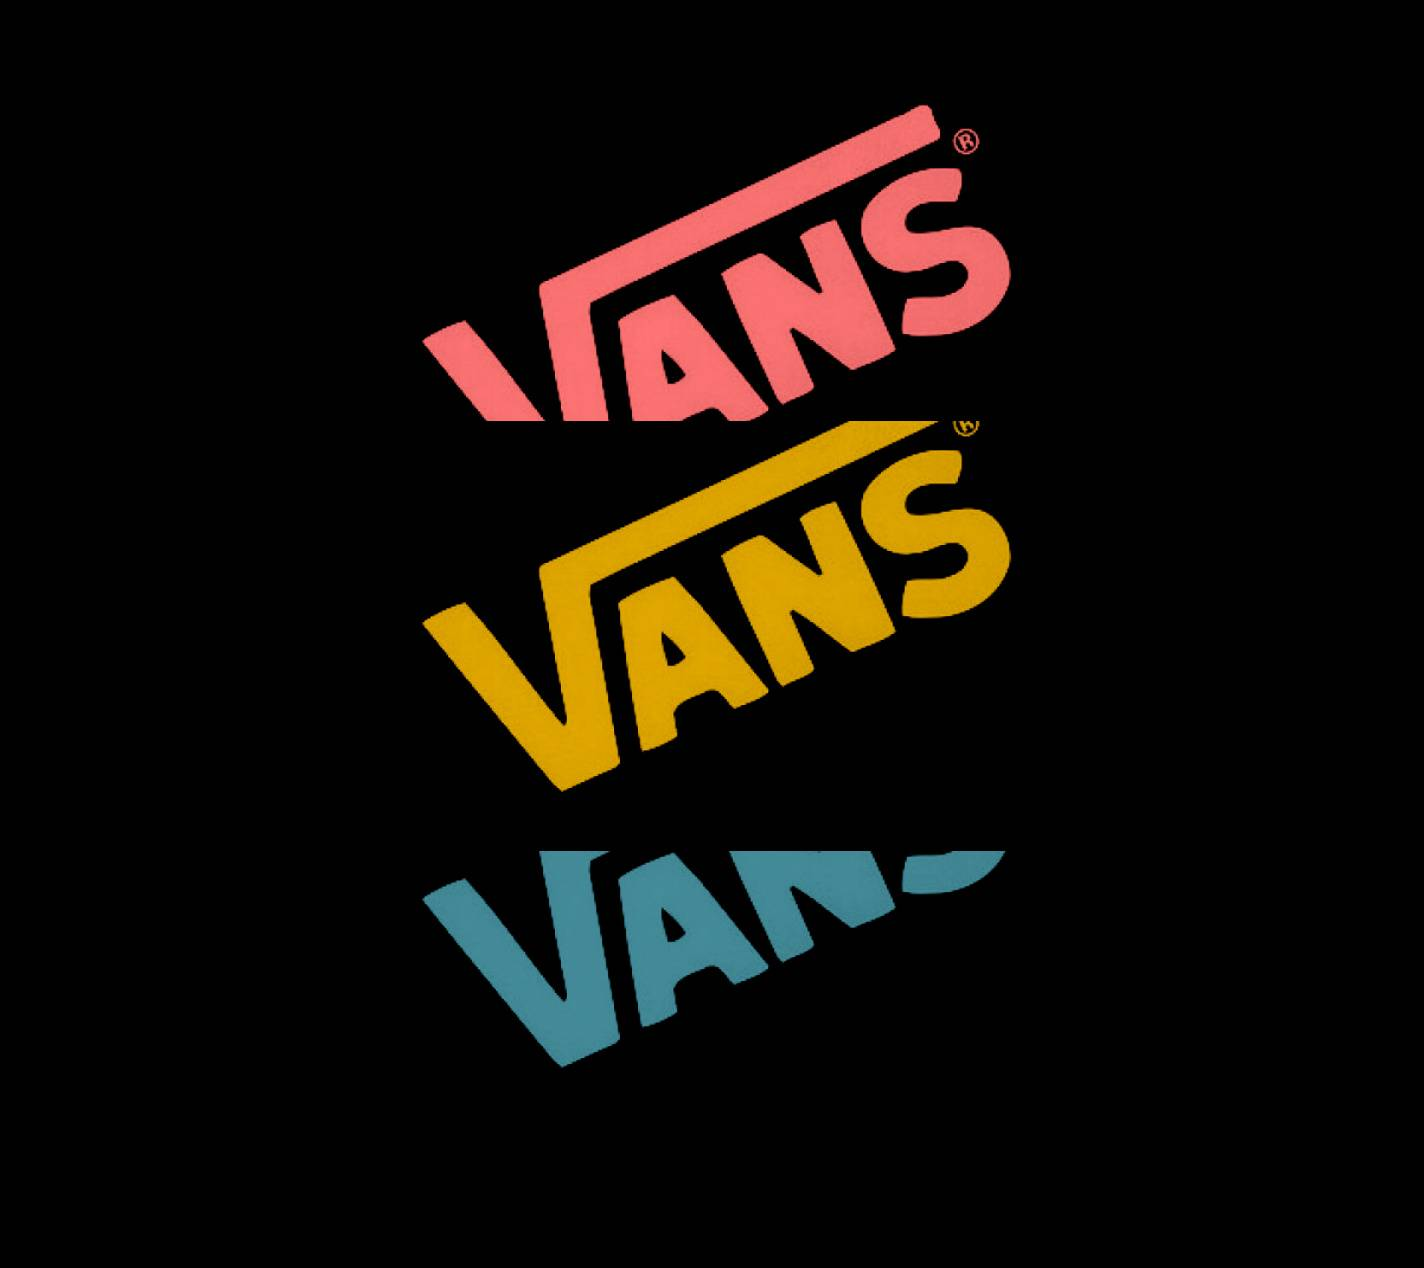 Vans Wallpapers - Cueva Wallpaper